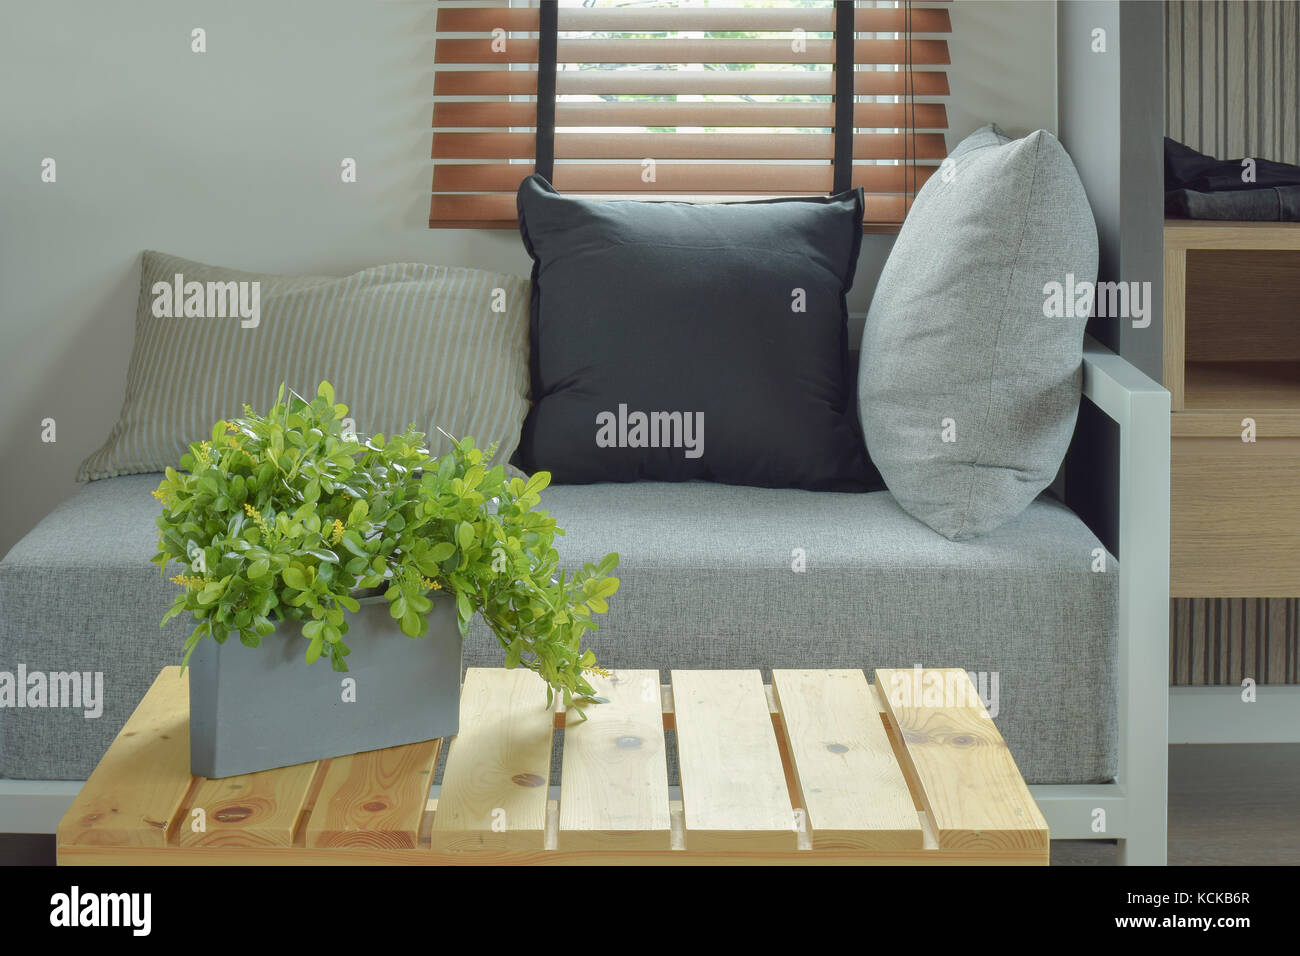 Plant pot on center wooden table and comfy seat in living room - Stock Image